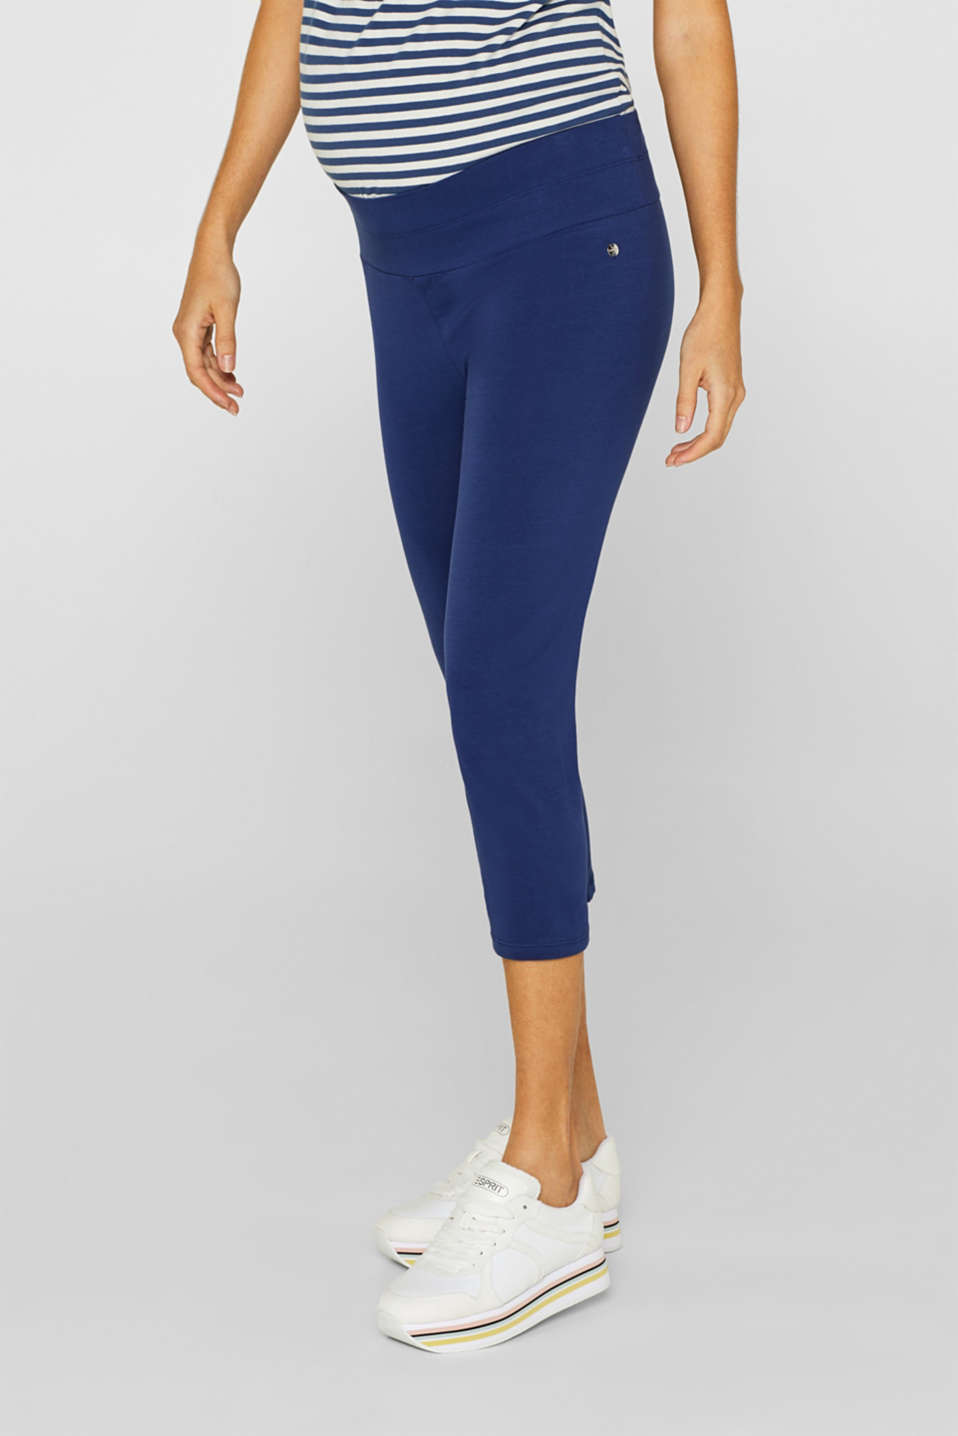 Capri leggings with a supporting, below-bump waistband, LCDARK BLUE, detail image number 1